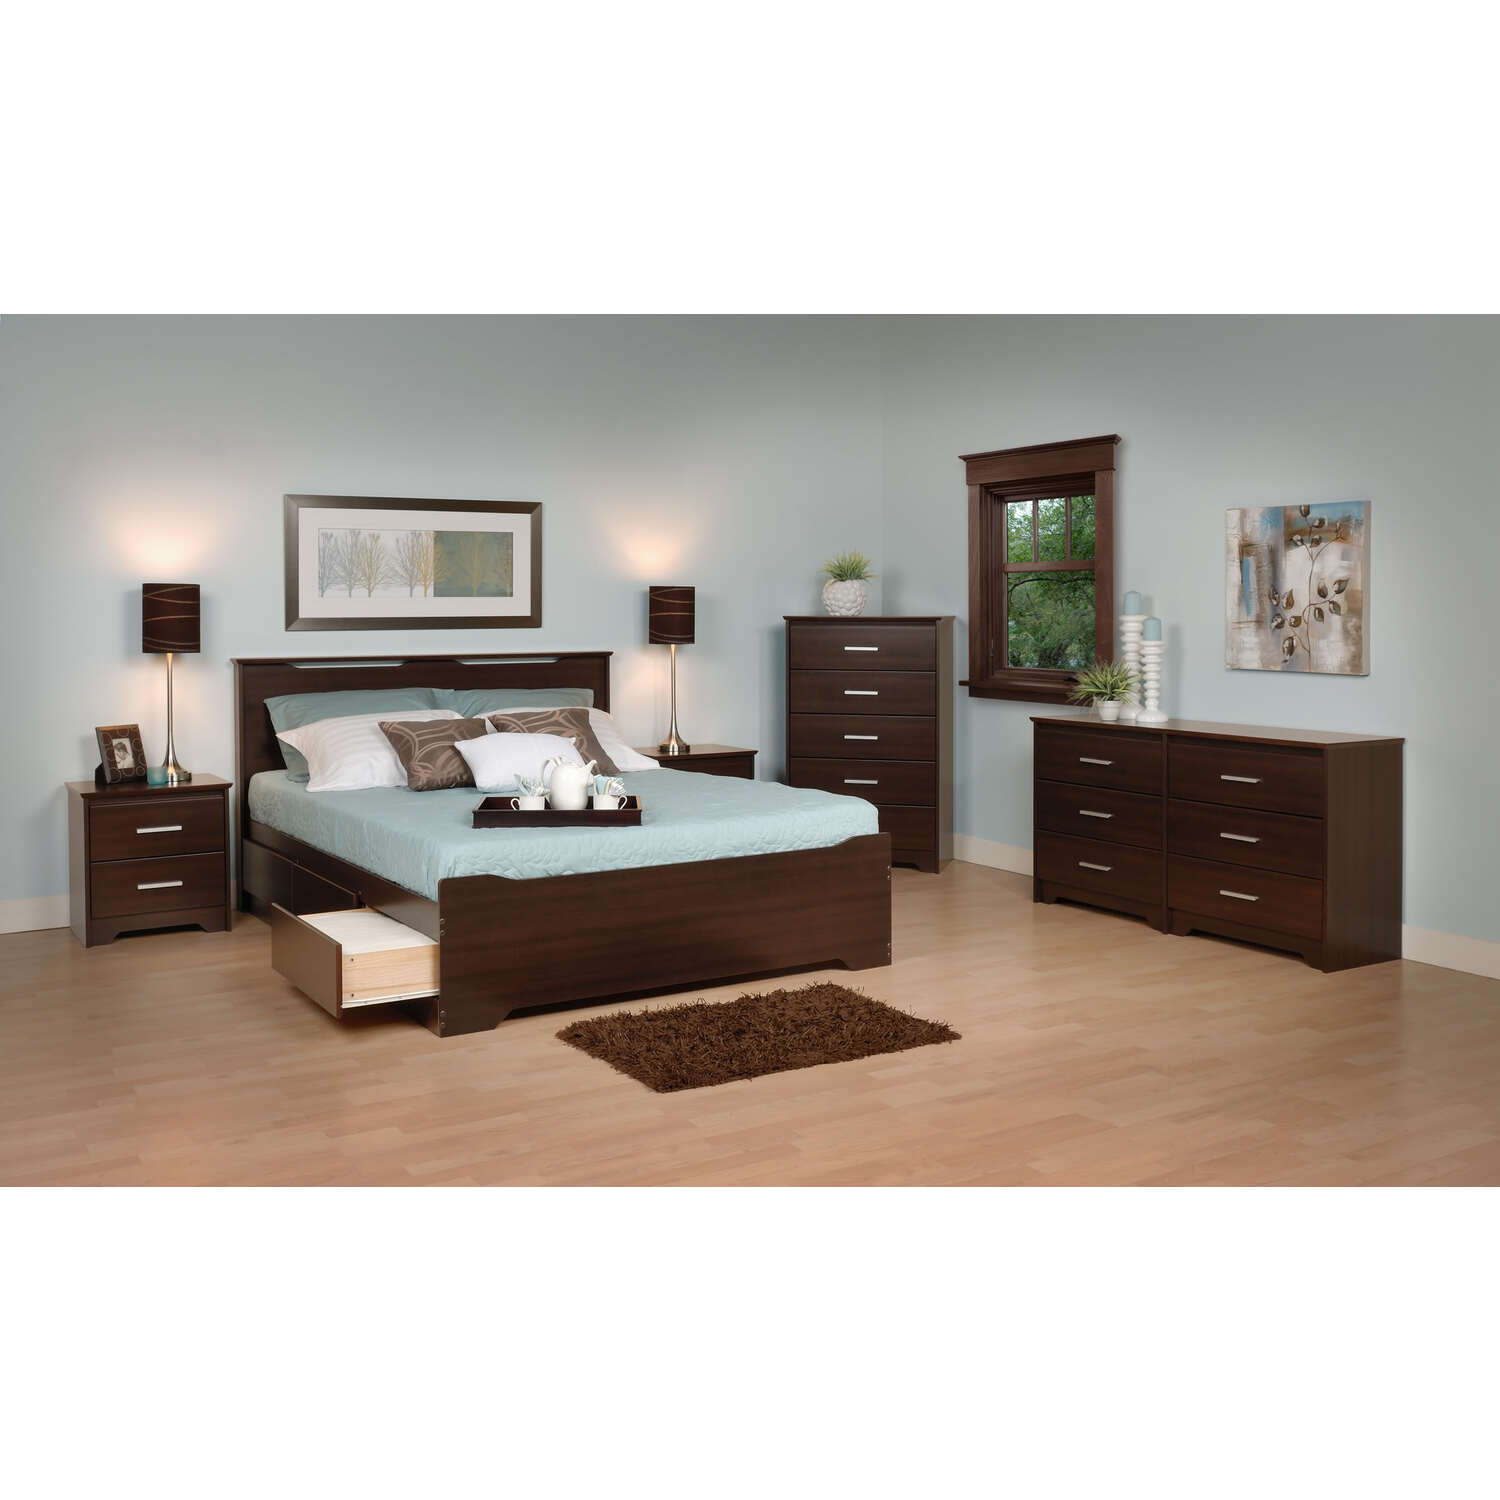 Coal Harbor Full 6 Piece Bedroom Set